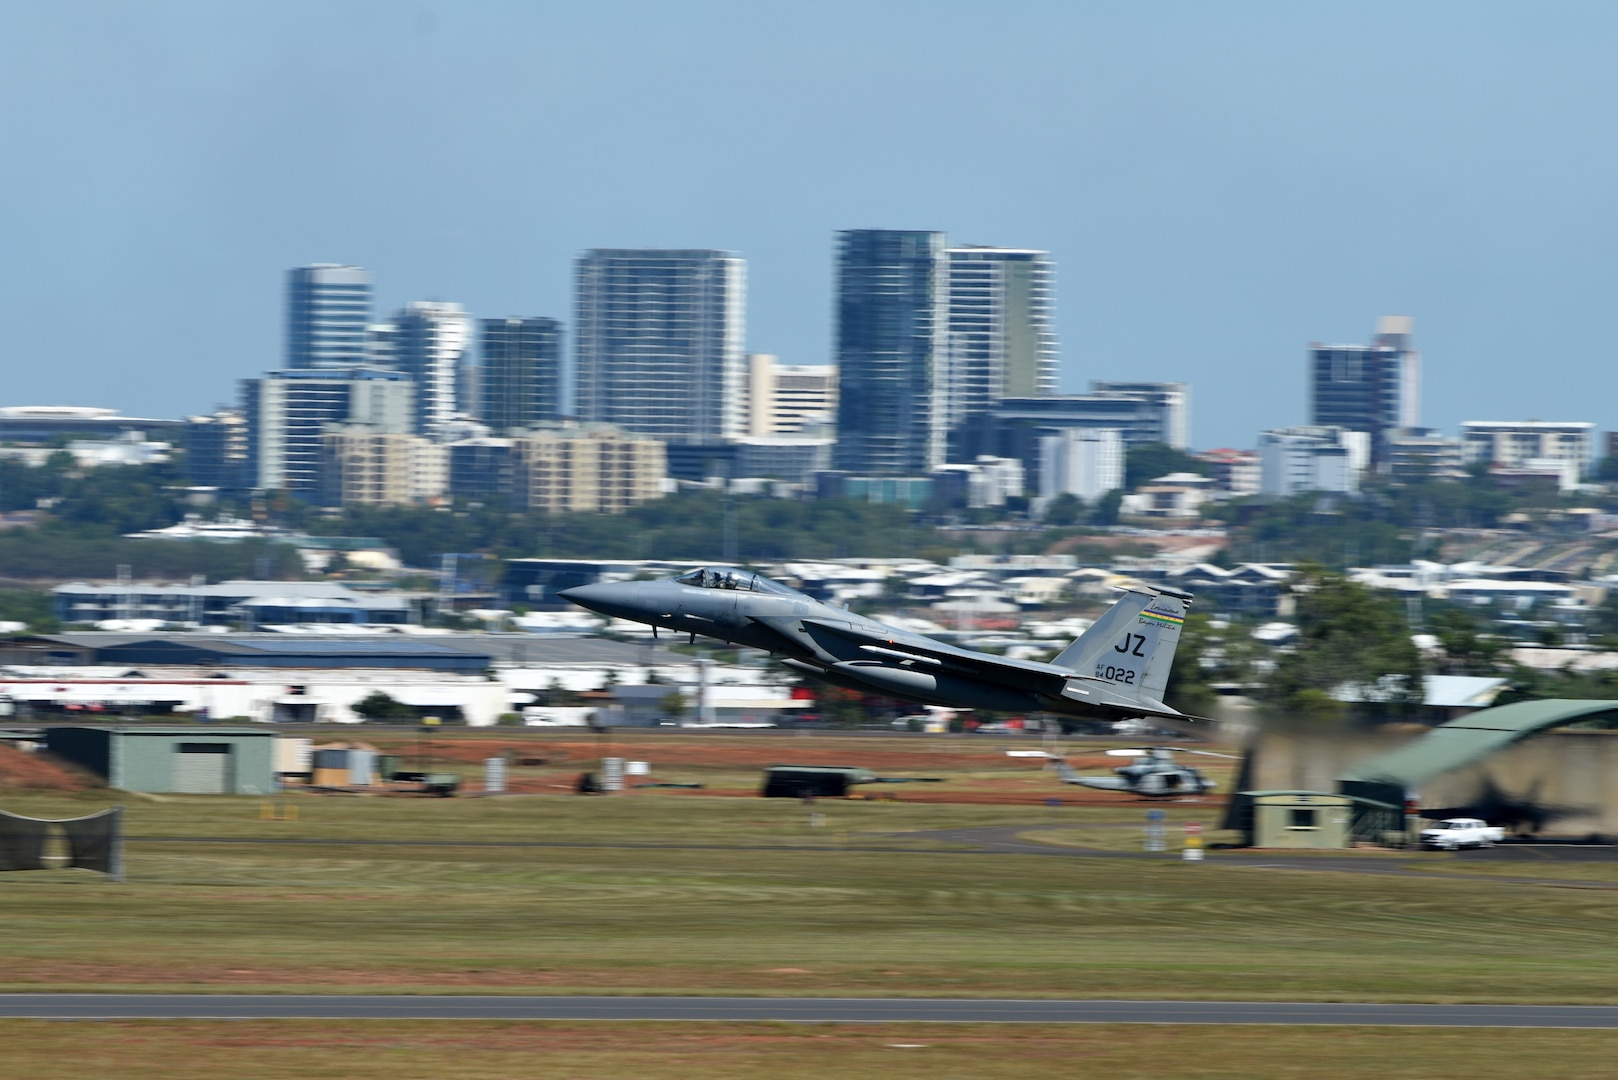 A U.S. Air Force F-15C Eagle with the 194th Expeditionary Fighter Squadron takes off during Exercise Diamond Storm at Royal Australian Air Force Base (RAAF) Darwin, Australia, May 15, 2019. The 194th EFS used F-15Cs to aid RAAF pilots in offensive counter air training scenarios in support of Australia's Air Warfare Instructor Course. (U.S. Air Force photo by Staff Sgt. Joshua Edwards)